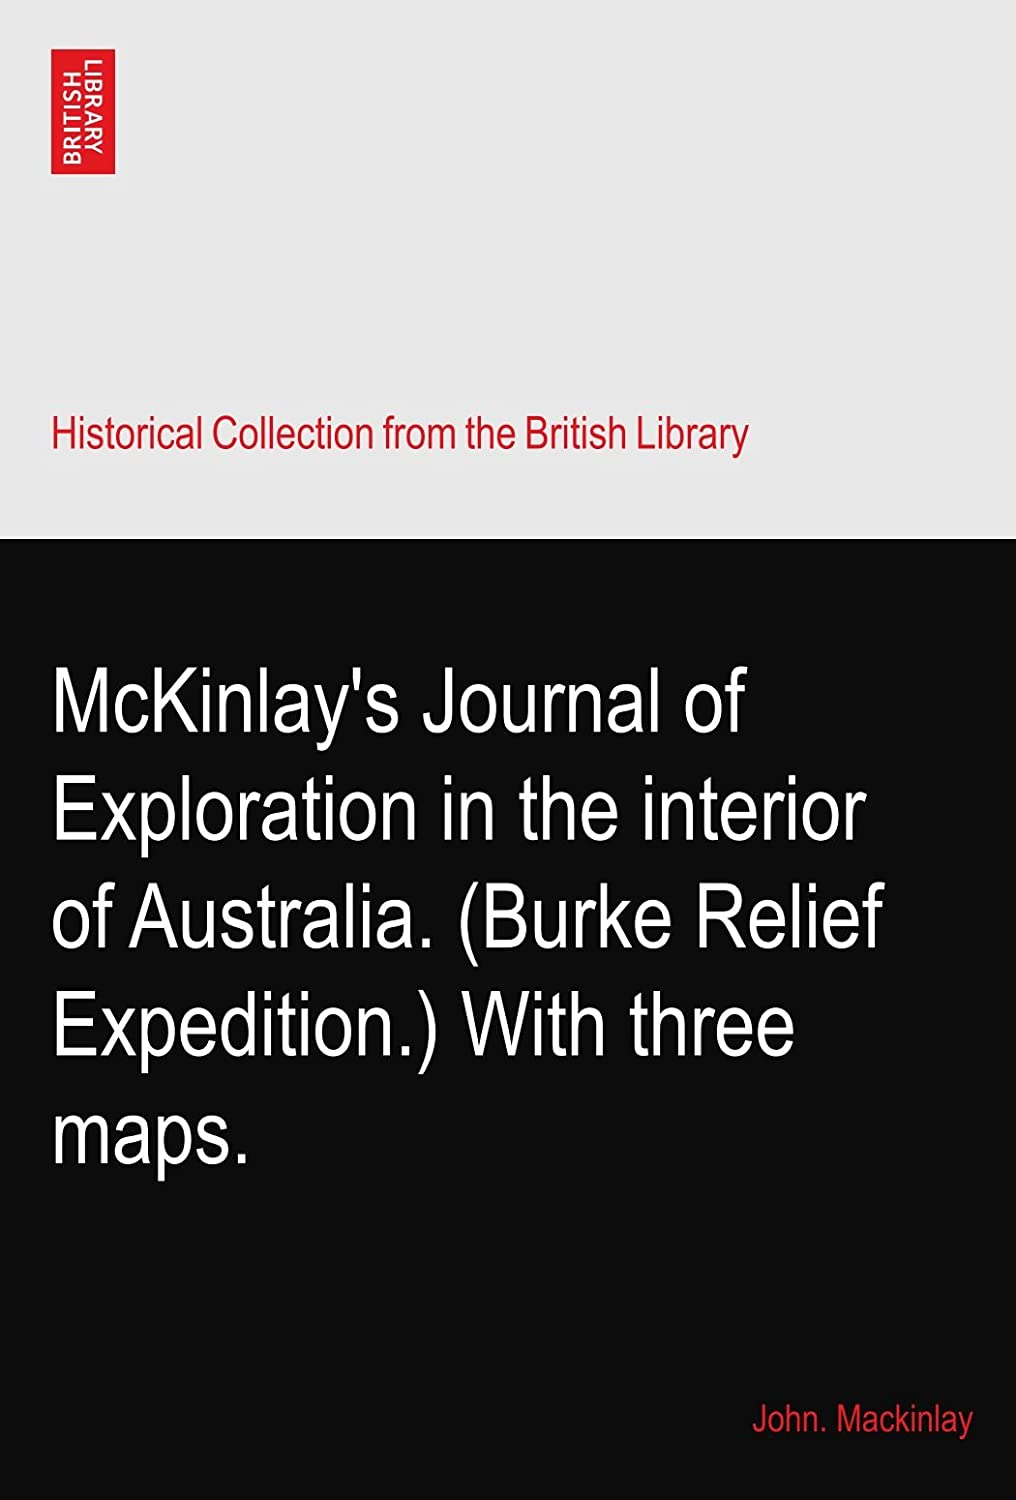 McKinlay's Journal of Exploration in the interior of Australia. (Burke Relief Expedition.) With three maps.